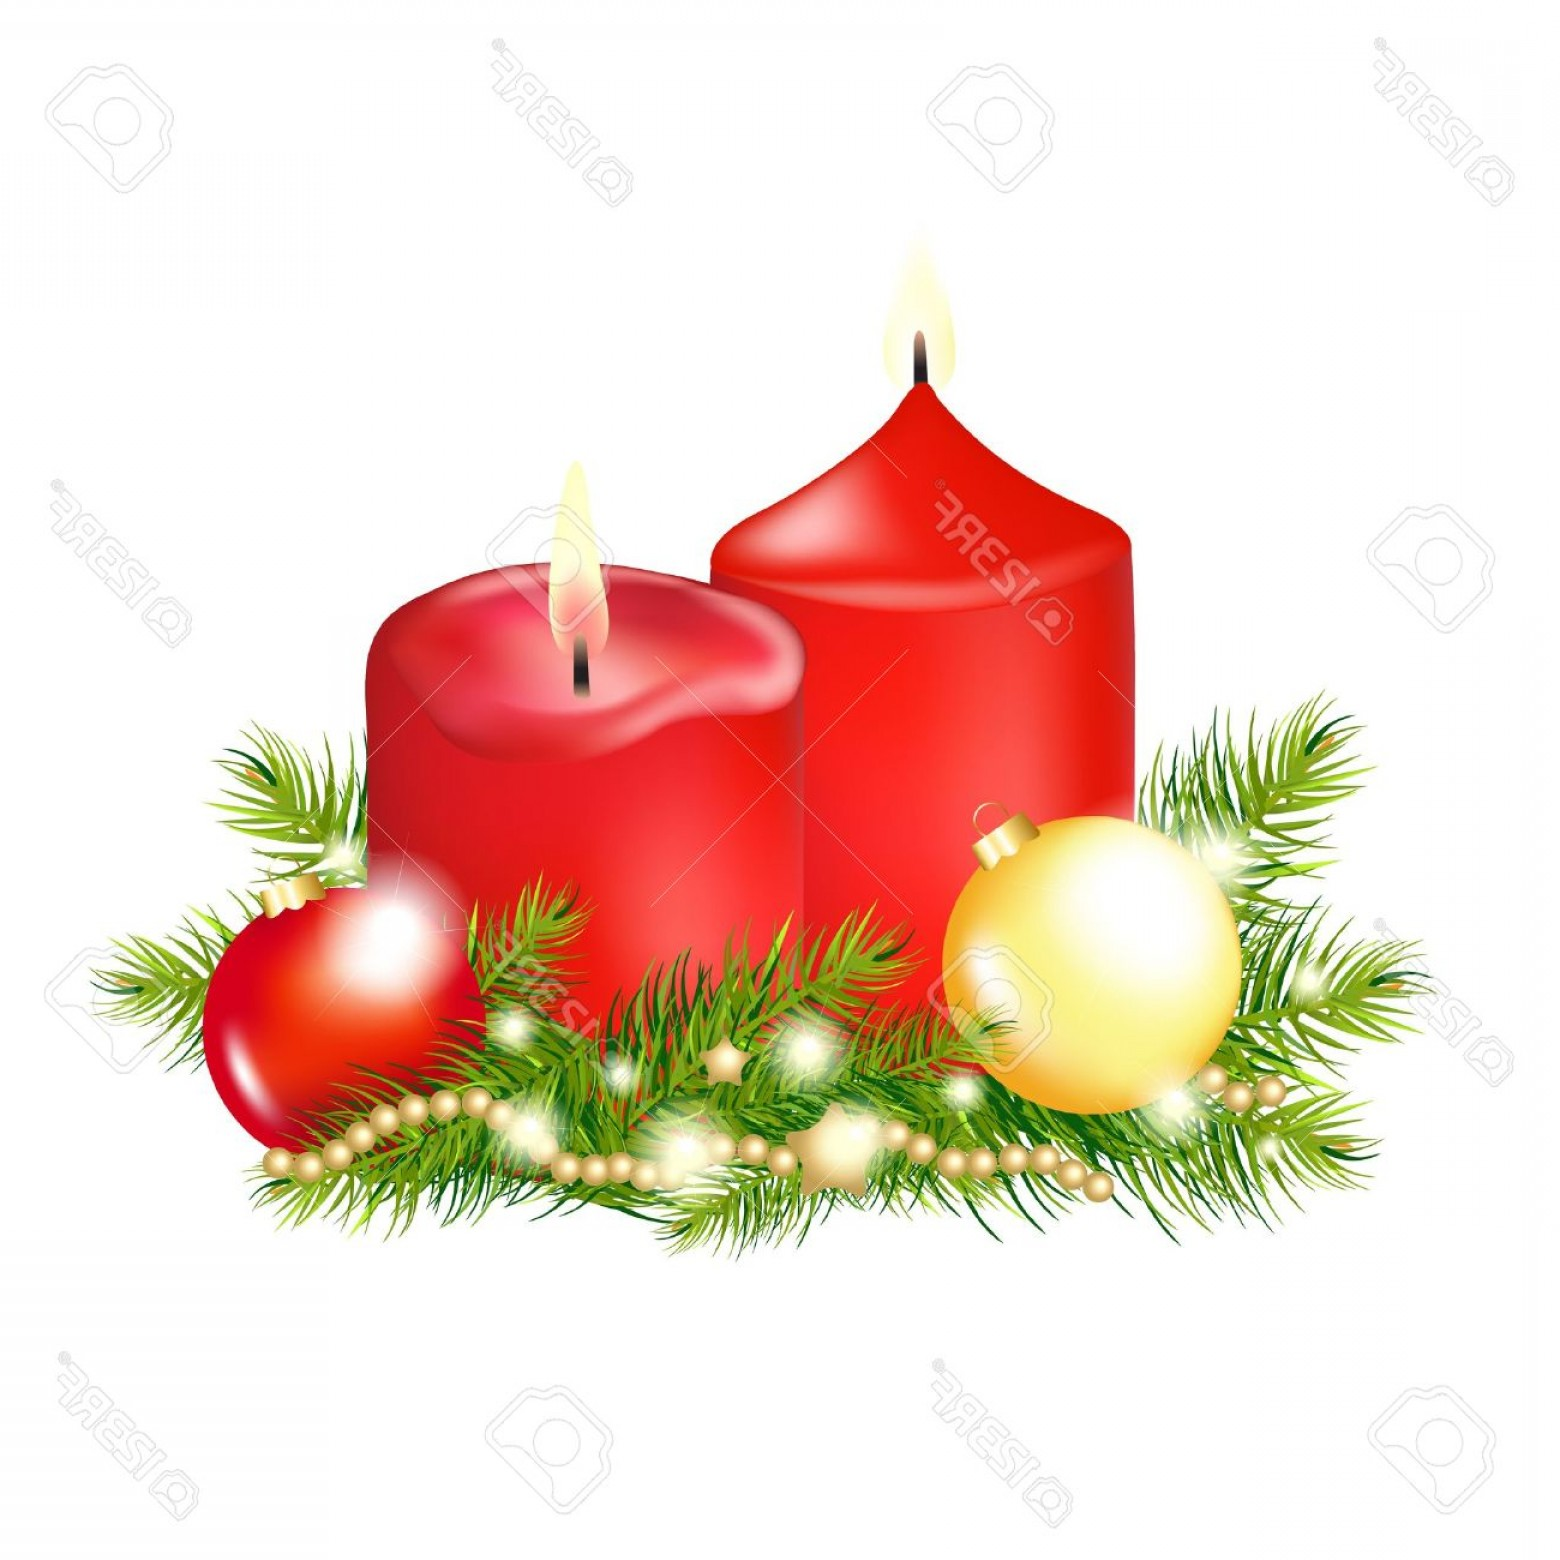 Vector-Based Grayscale Christmas: Photo Red Christmas Candle Isolated On White Background Illustration